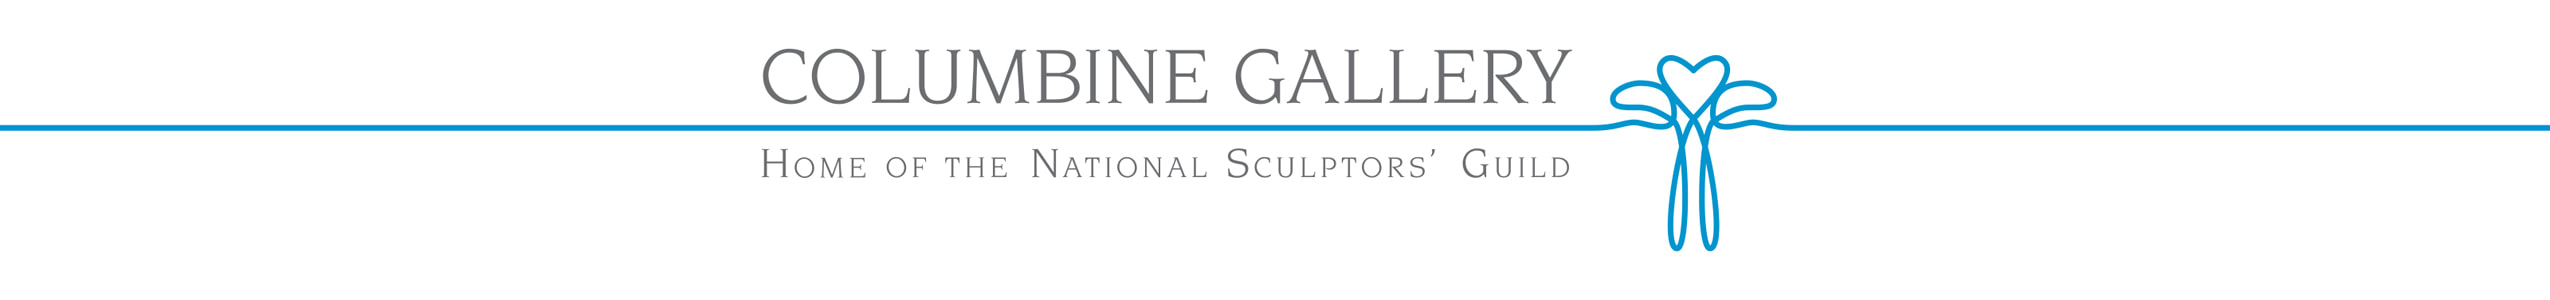 JK Designs and the National Sculptors' Guild at Columbine Gallery. Columbine is the Colorado State flower and symbol for Spirit. Our Loveland location of Columbine Art Gallery and the National Sculptors' Guild has quickly become the largest original fine art source in Colorado located across the street from Sculpture in the Park events at Benson Park, we feature artwork by 50 represented artists year round, ship worldwide.